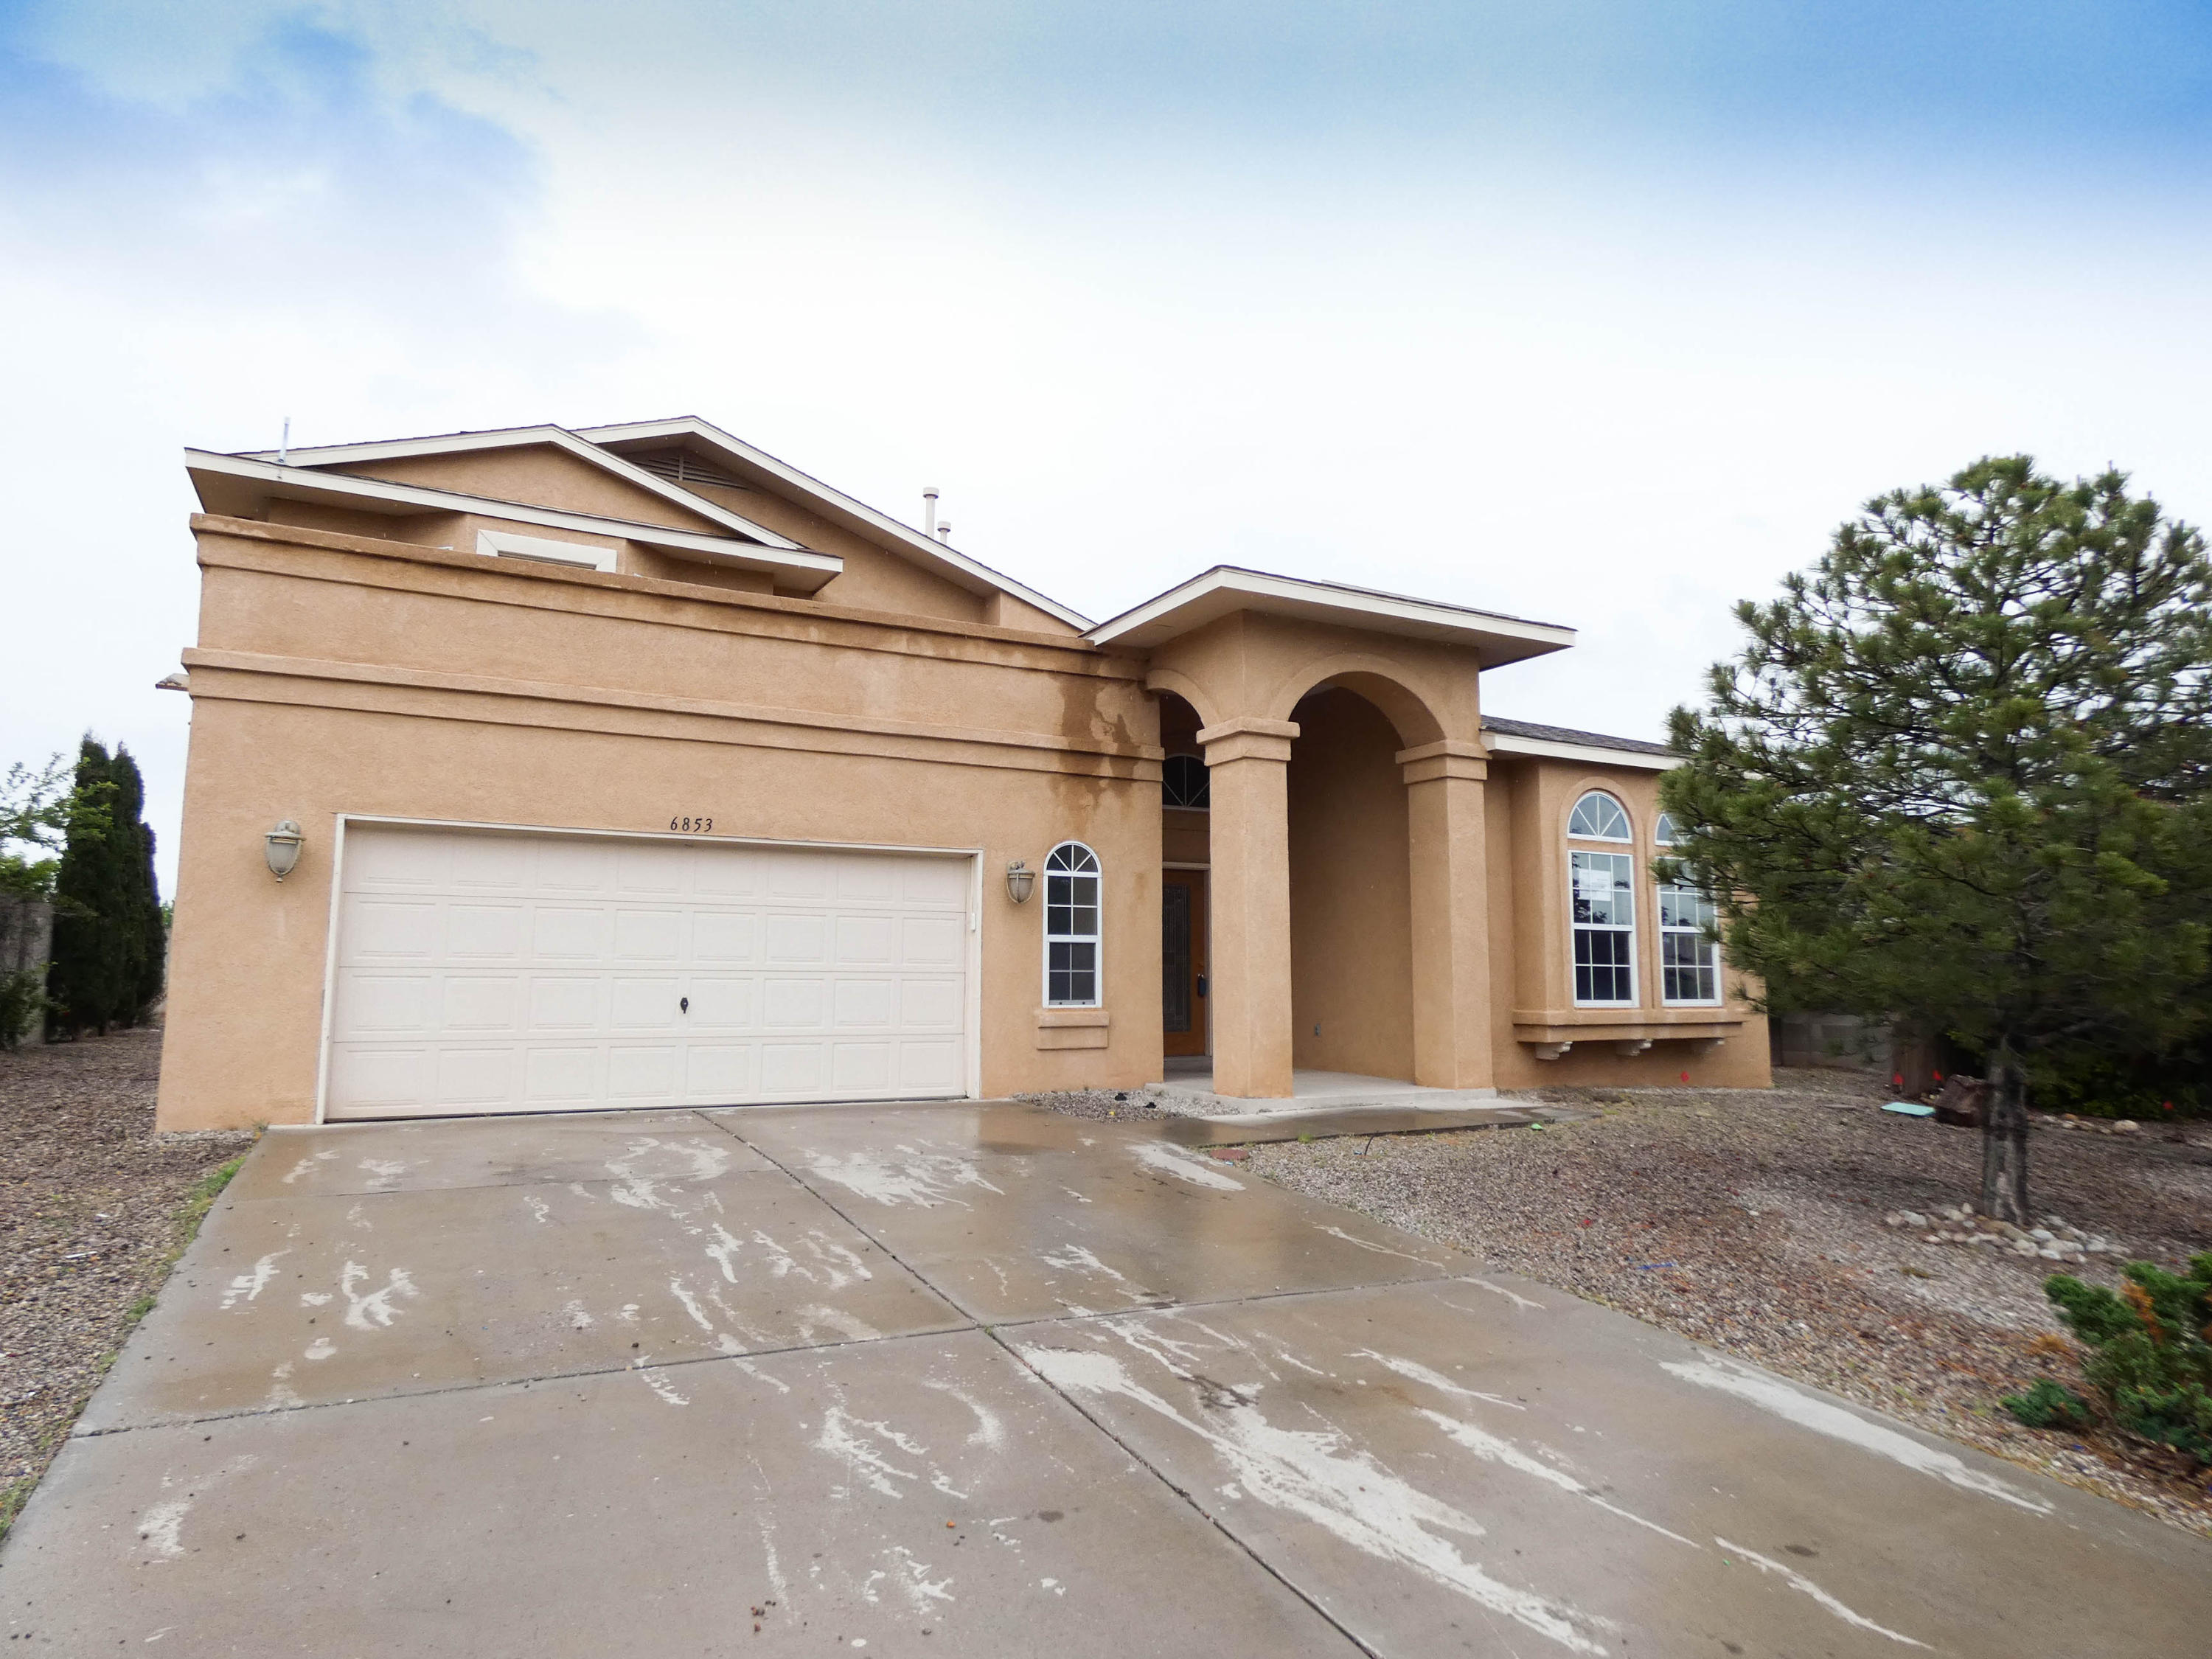 6853 NE Augusta Hills Drive, Rio Rancho in Sandoval County, NM 87144 Home for Sale